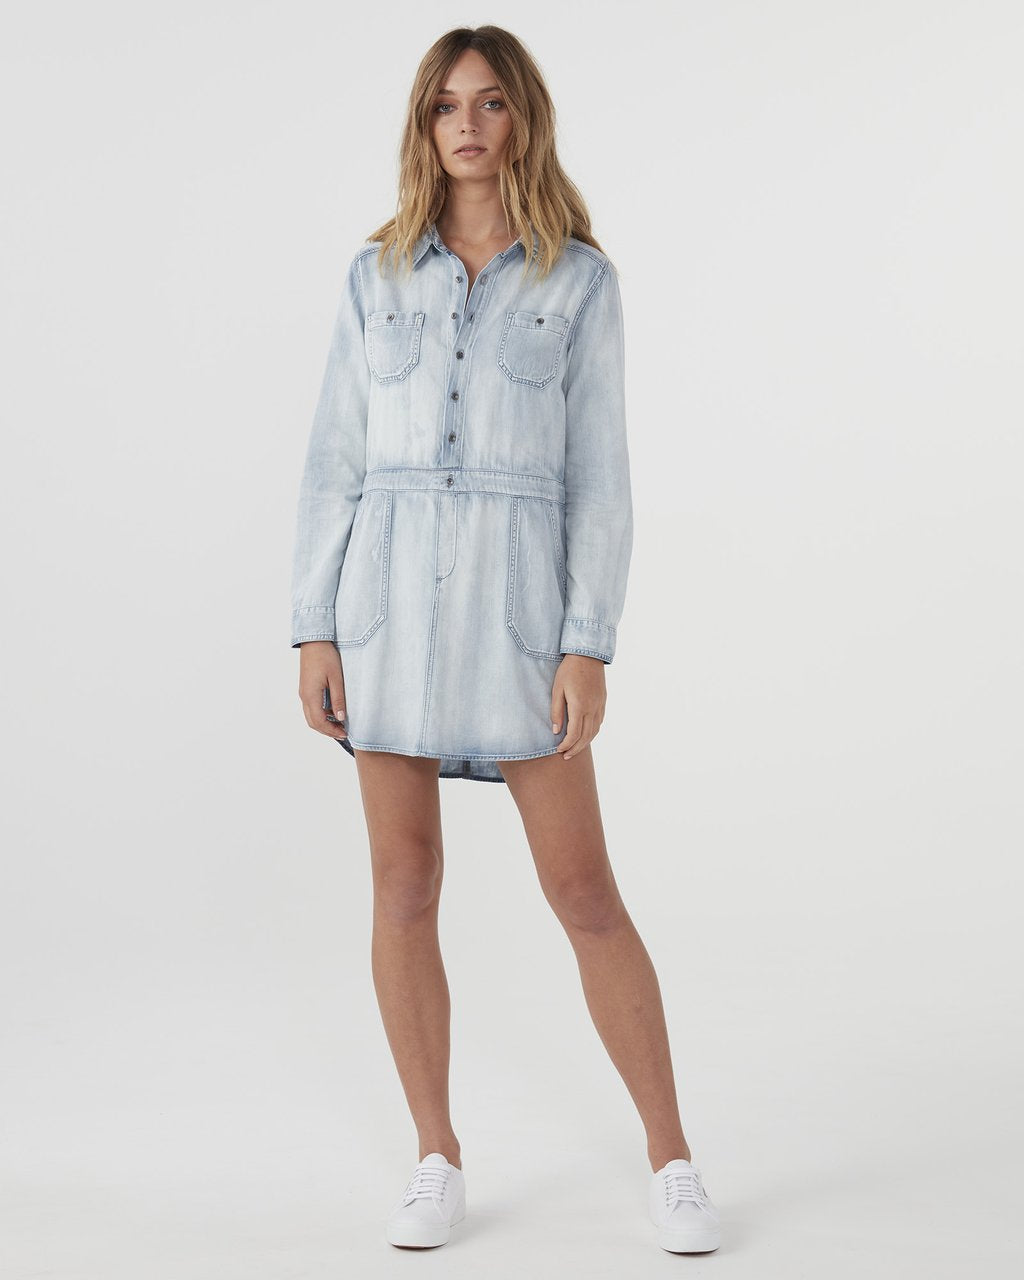 Jac + Mooki Chambray Dress